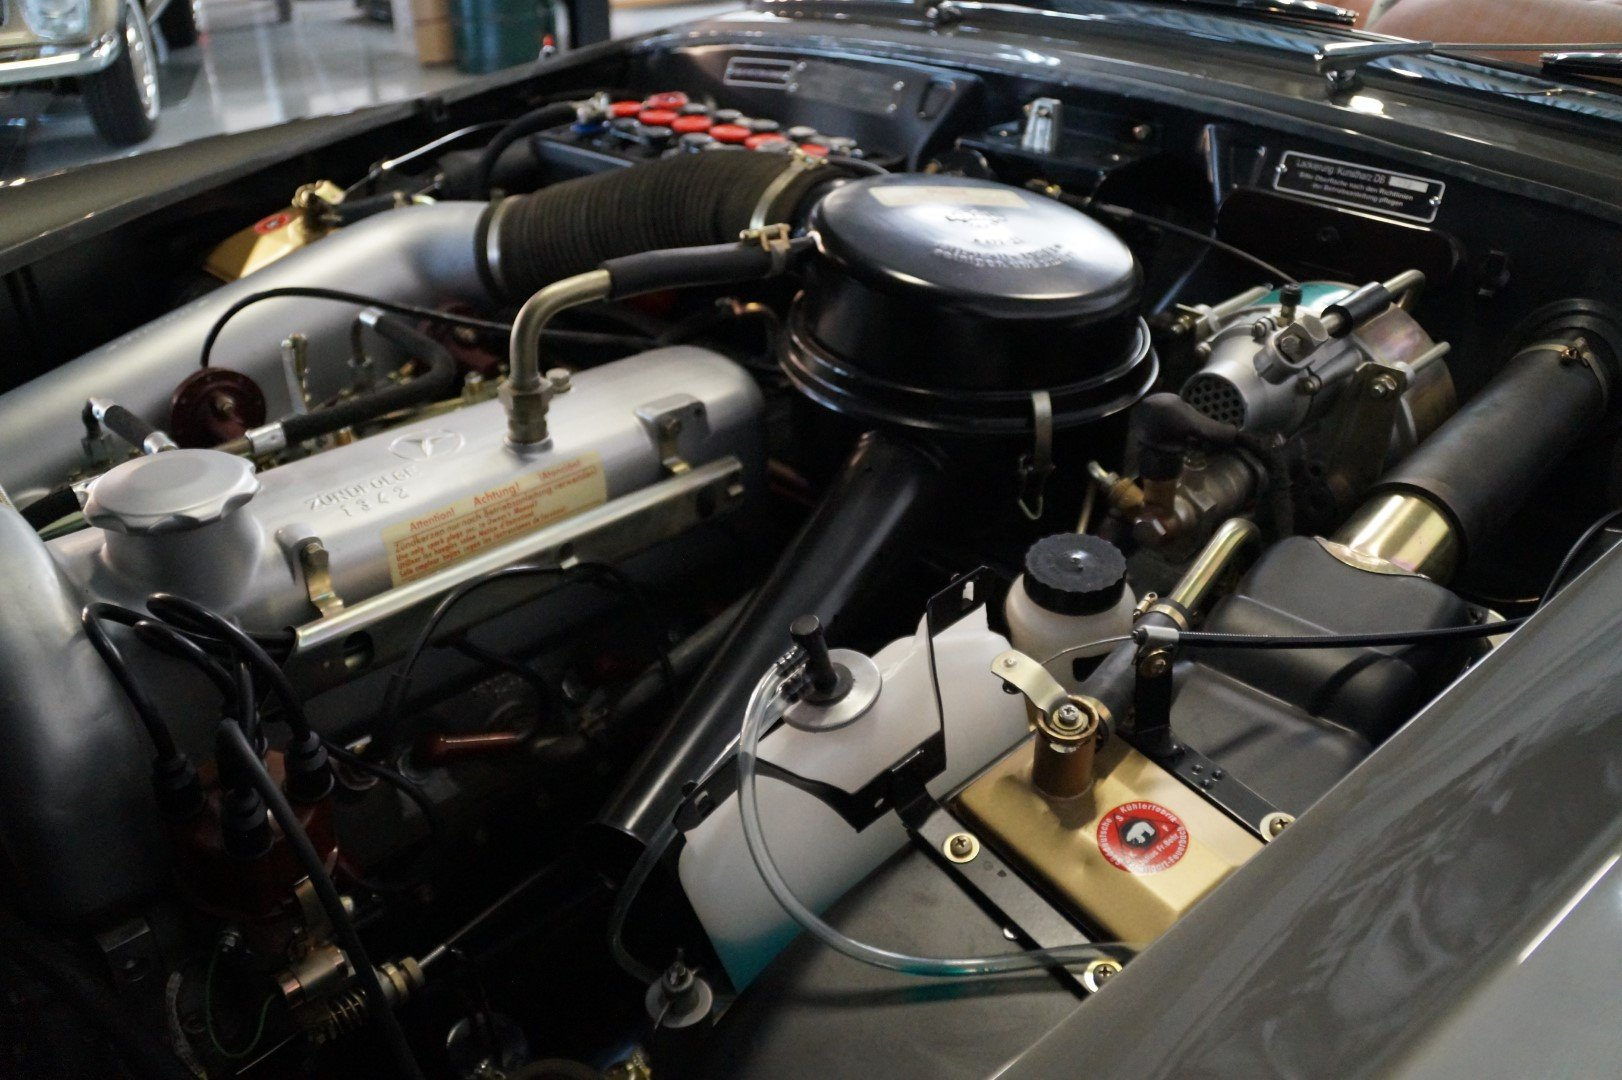 MERCEDES-BENZ 190 SL 190SL Concourse restored (1957) For Sale (picture 5 of 6)